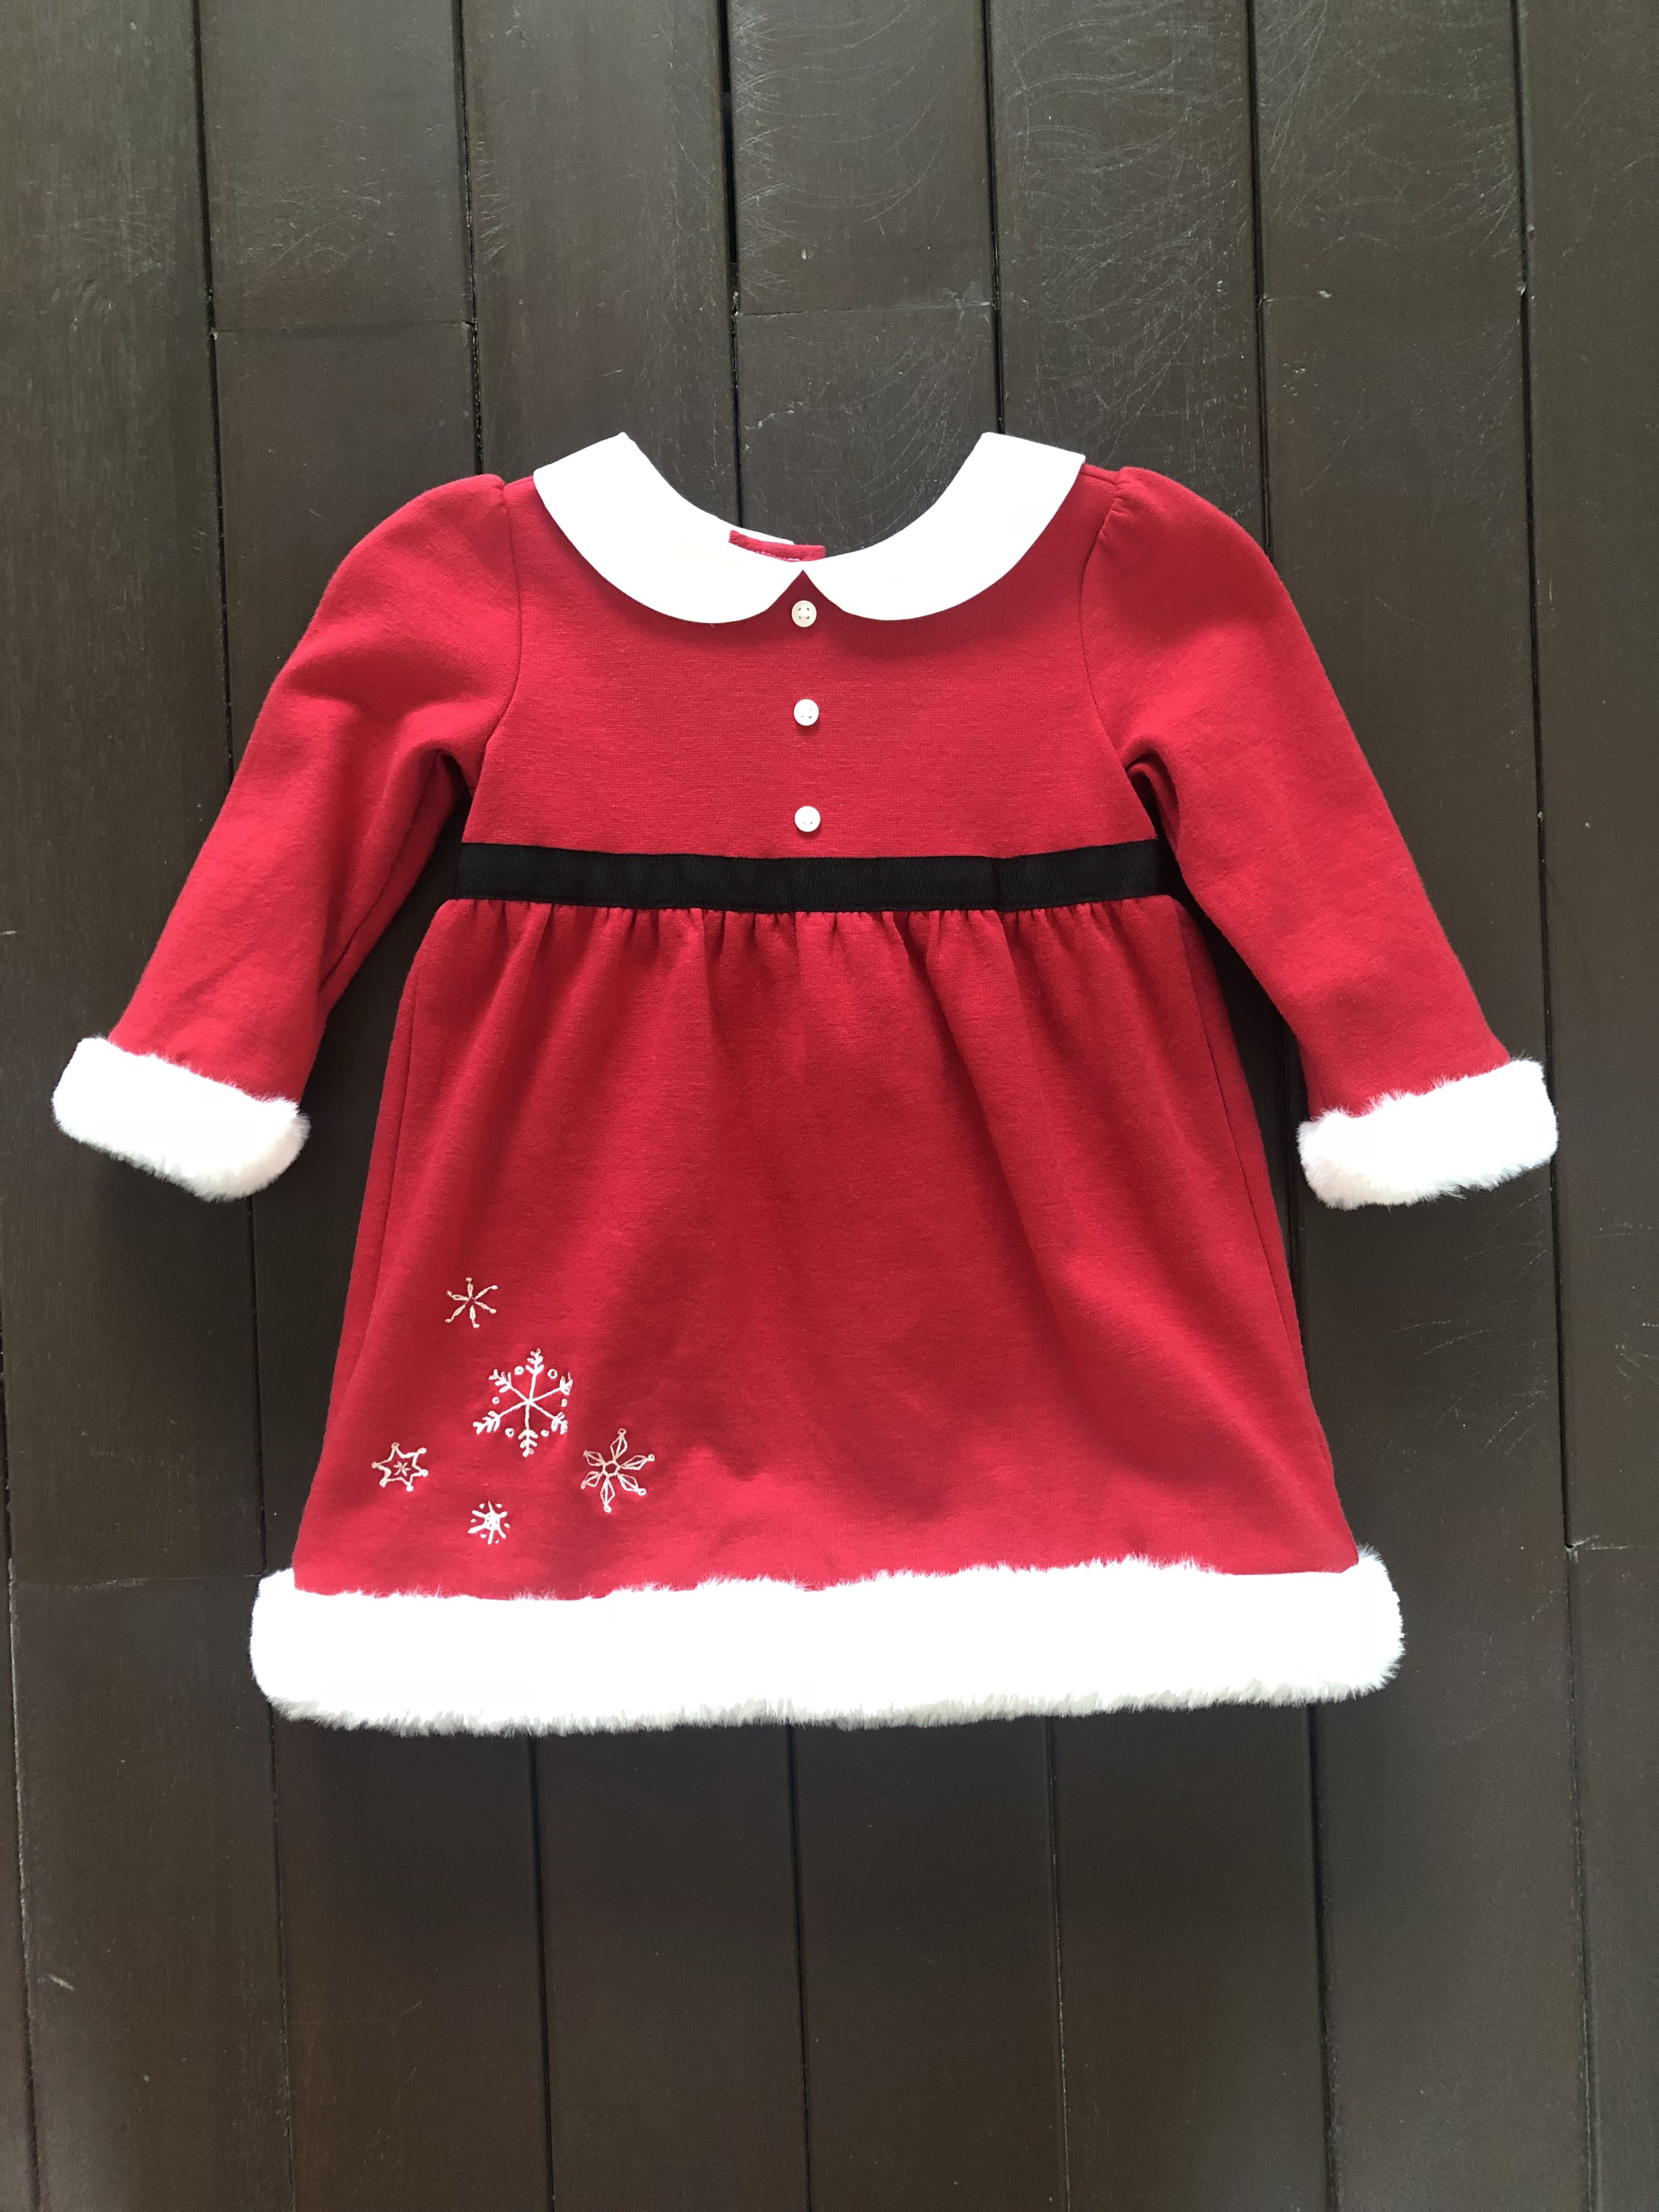 061263236 Christmas Santa outfit for girls